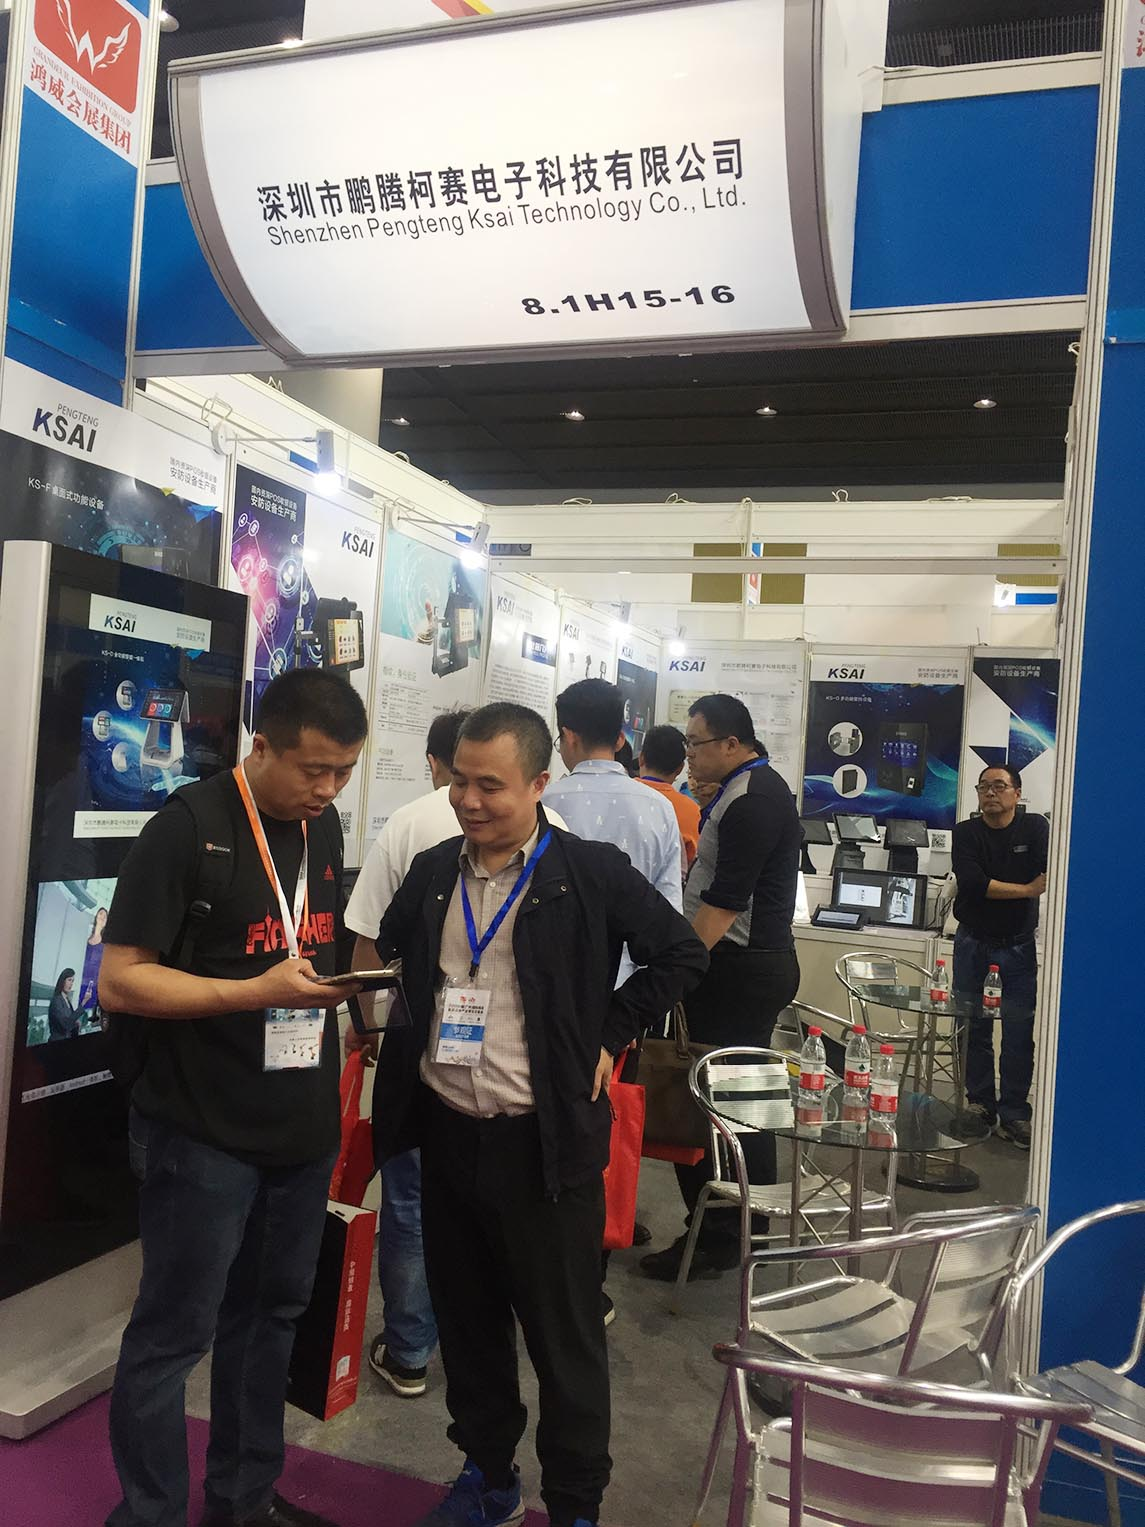 PTKSAI-Smart Expo China 20183 | News On Ptksai Electronic Technology-2